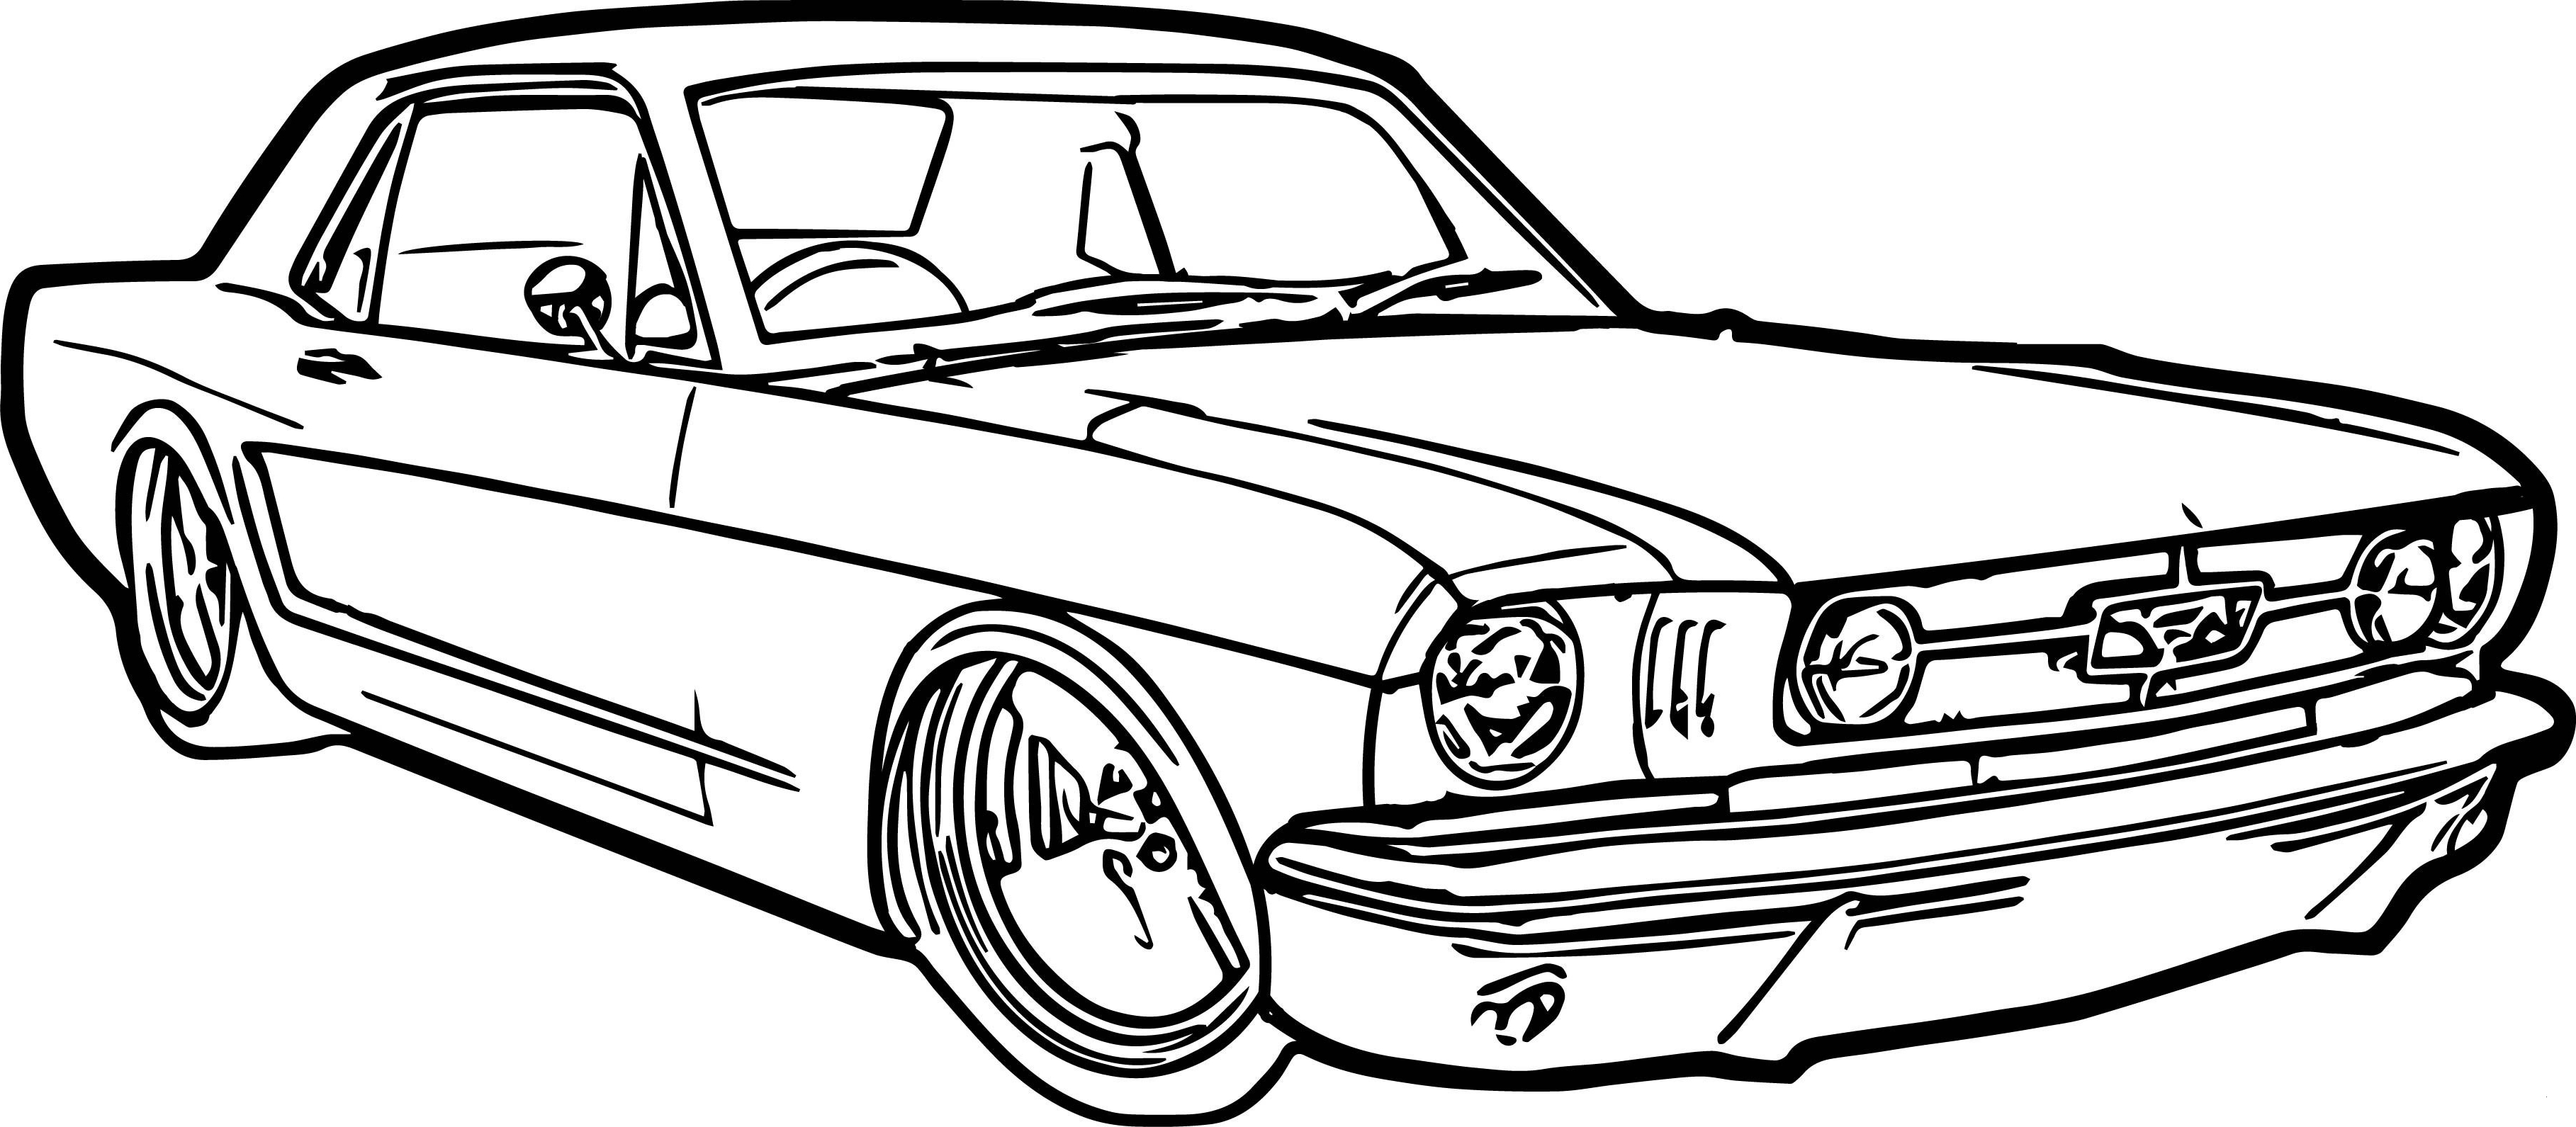 Car Drawing Easy | Free download on ClipArtMag